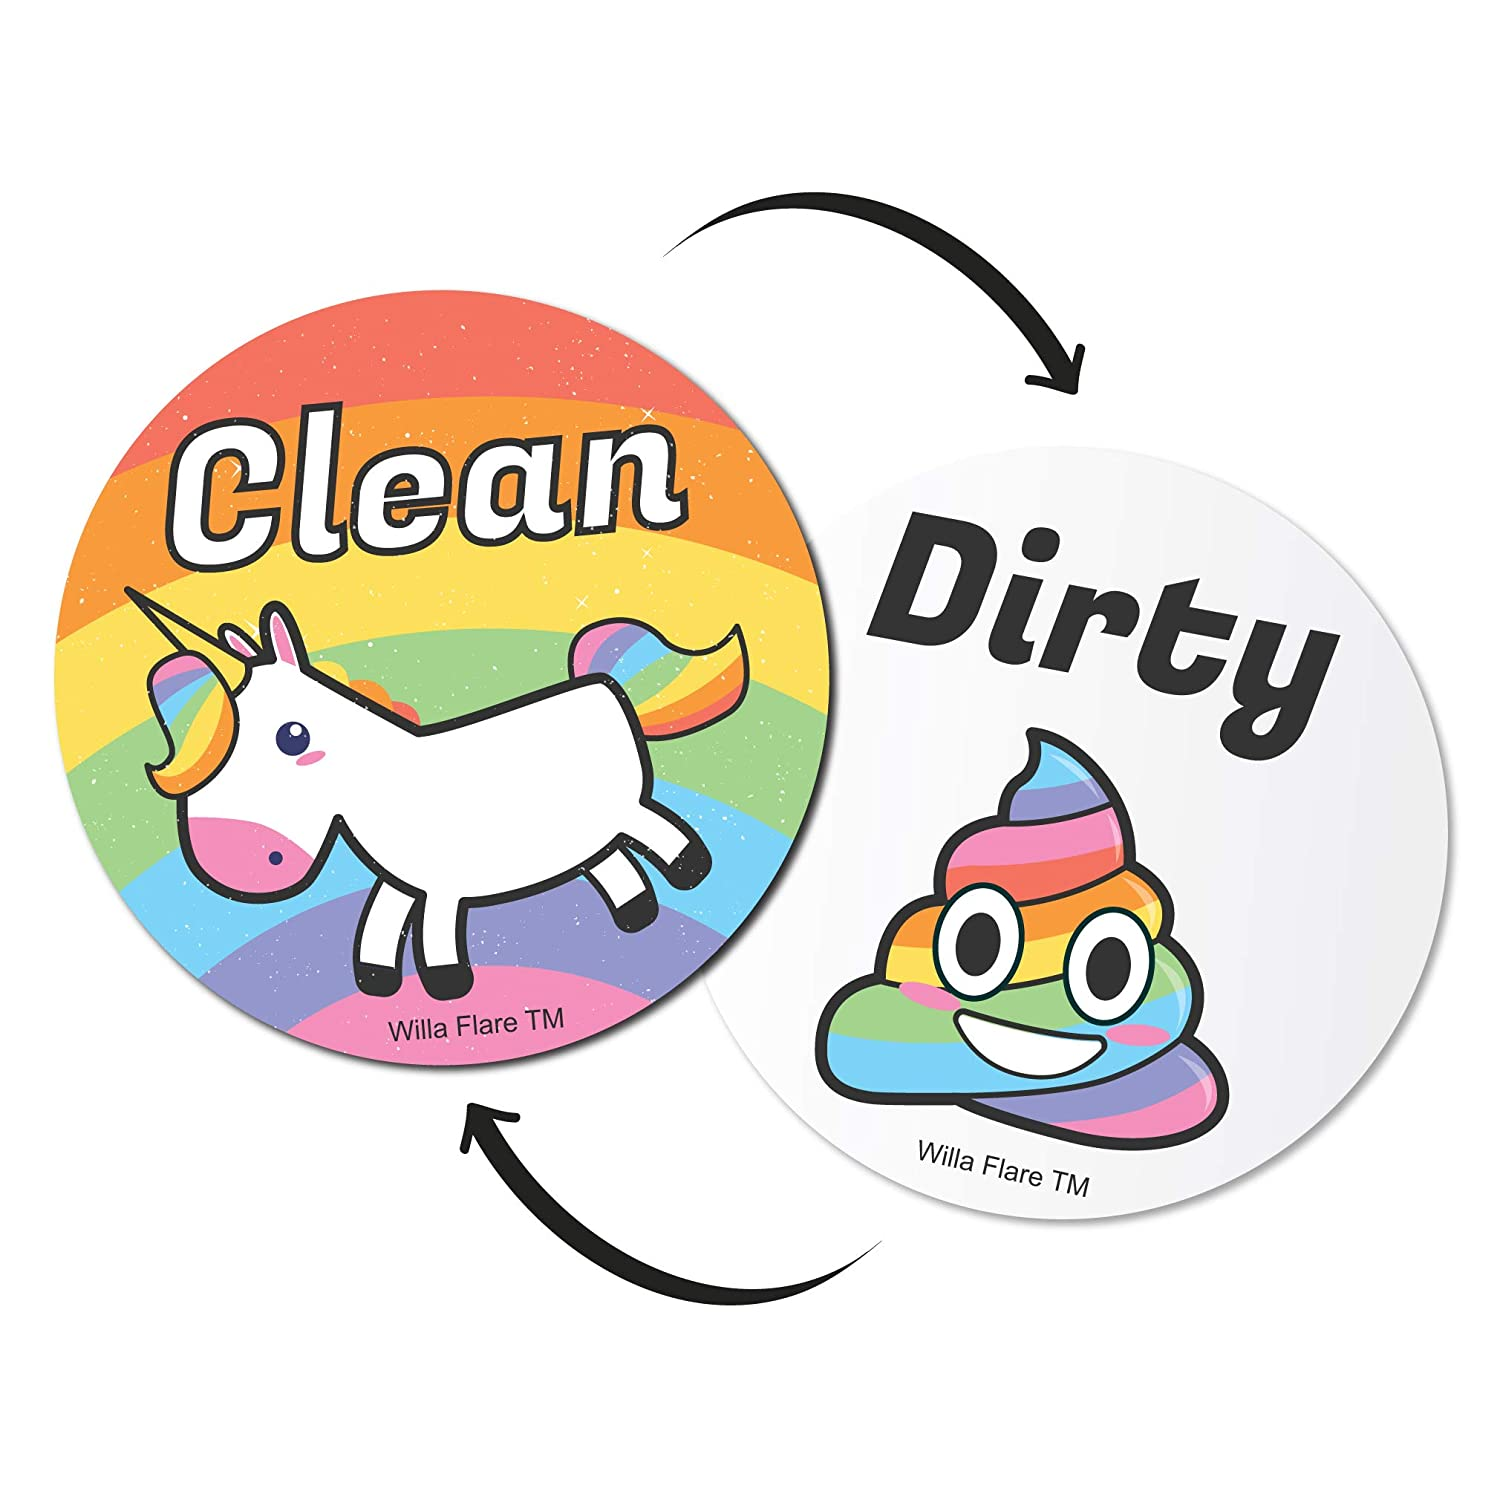 Emoji And Unicorn Clean Dirty Dishwasher Magnet Sign | Kitchen Label For Home Organization | Funny Novelty Gag Gifts Under 10 Dollars | Double Sided (Emoji, Updated 3.5 Inch)